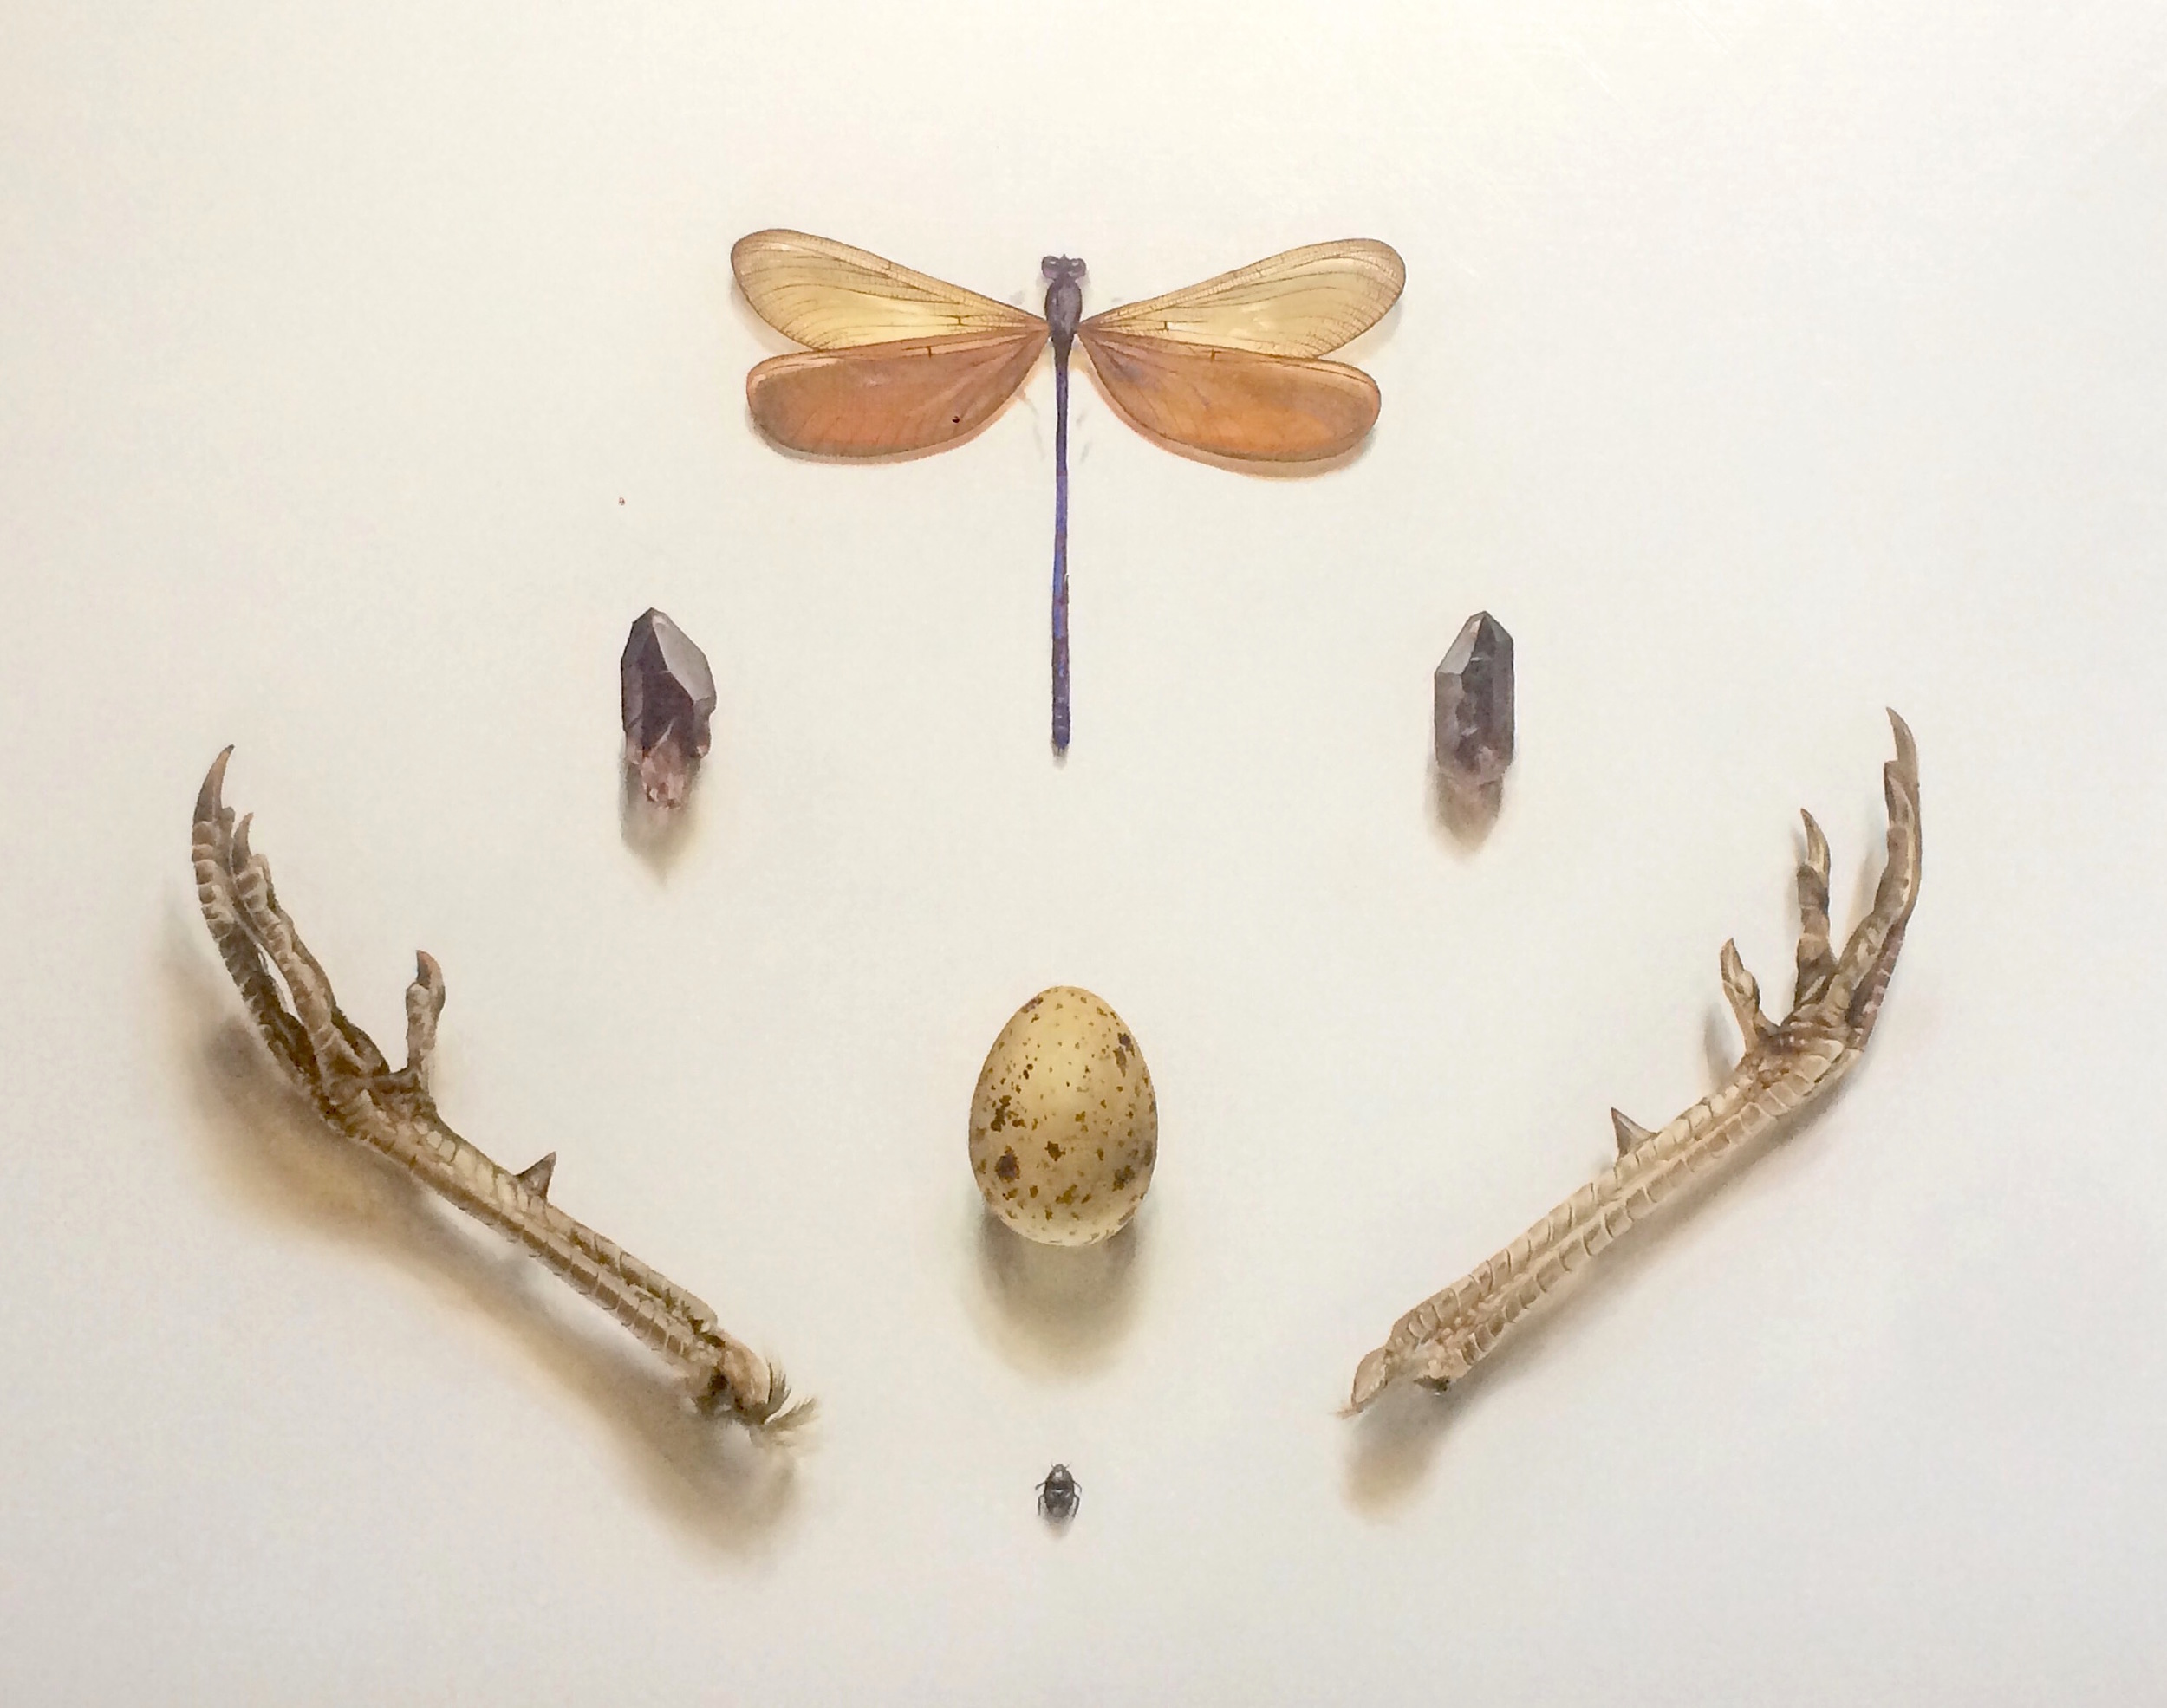 Dragonfly and Pheasant Feet